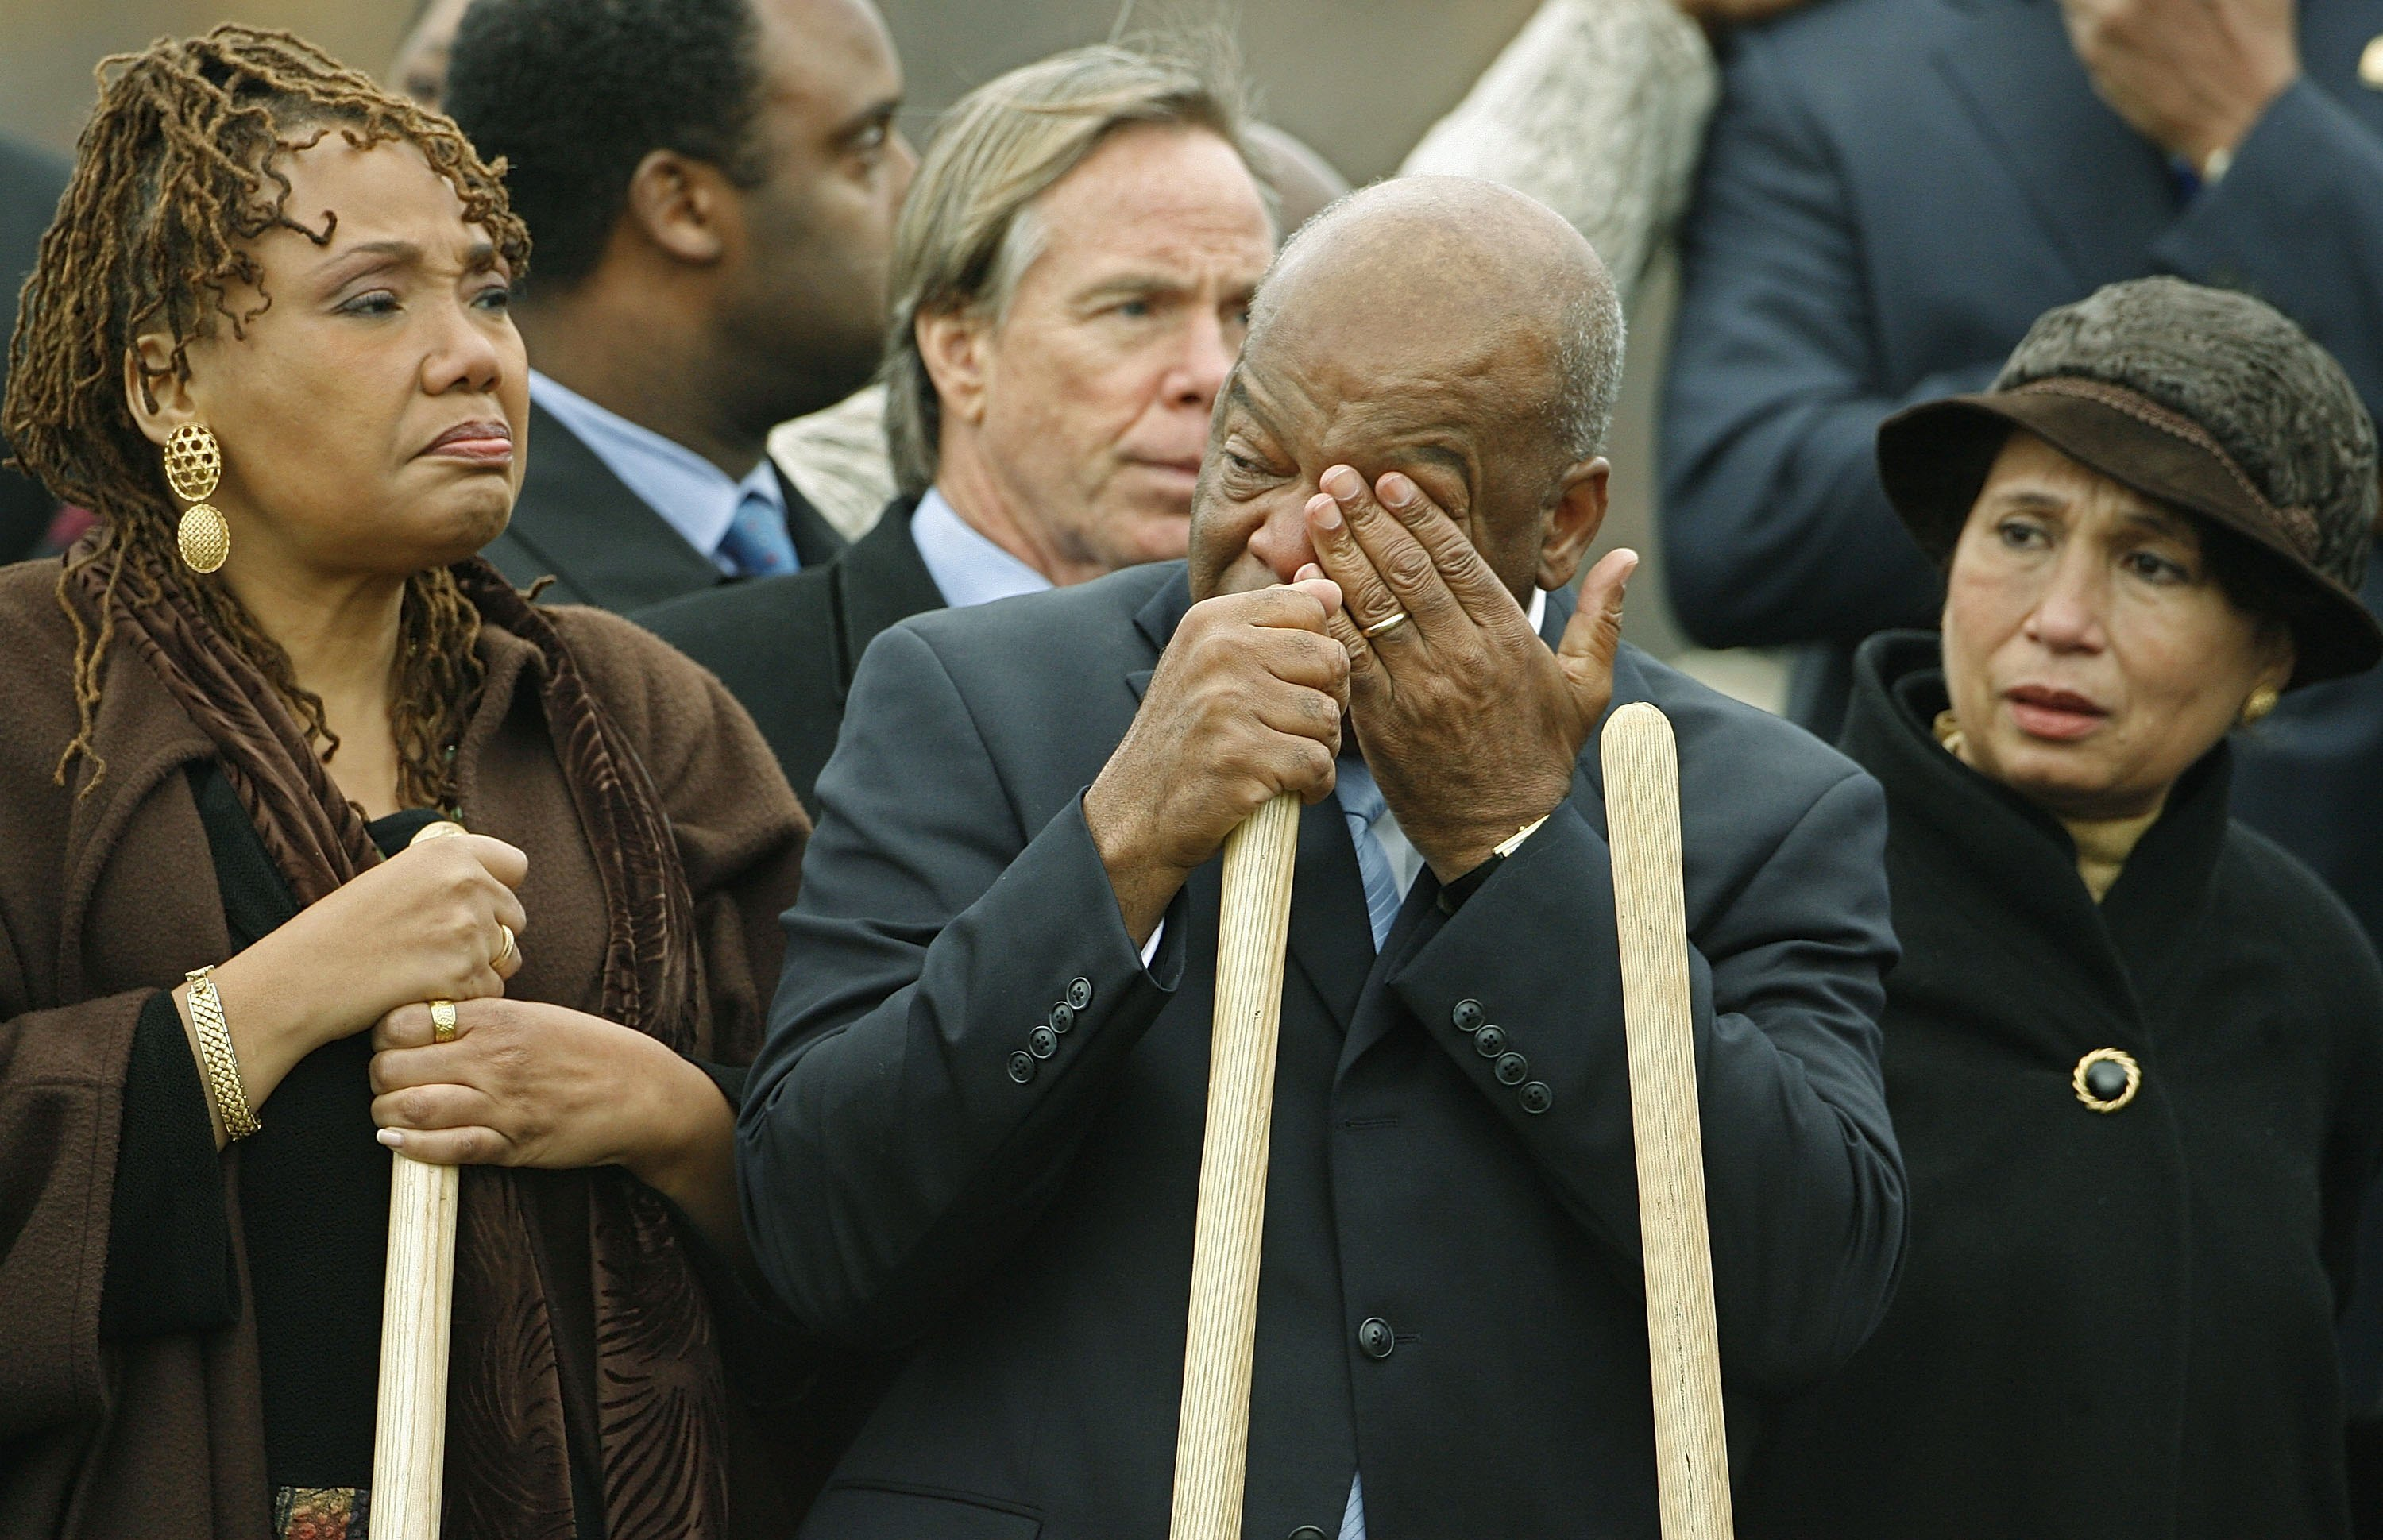 Bernice King (L), daughter of Martin Luther King Jr., stands next to Rep. John Lewis as he wipes away tears before breaking ground for the Martin Luther King Jr. National Memorial on November 13, 2006 in Washington, DC.